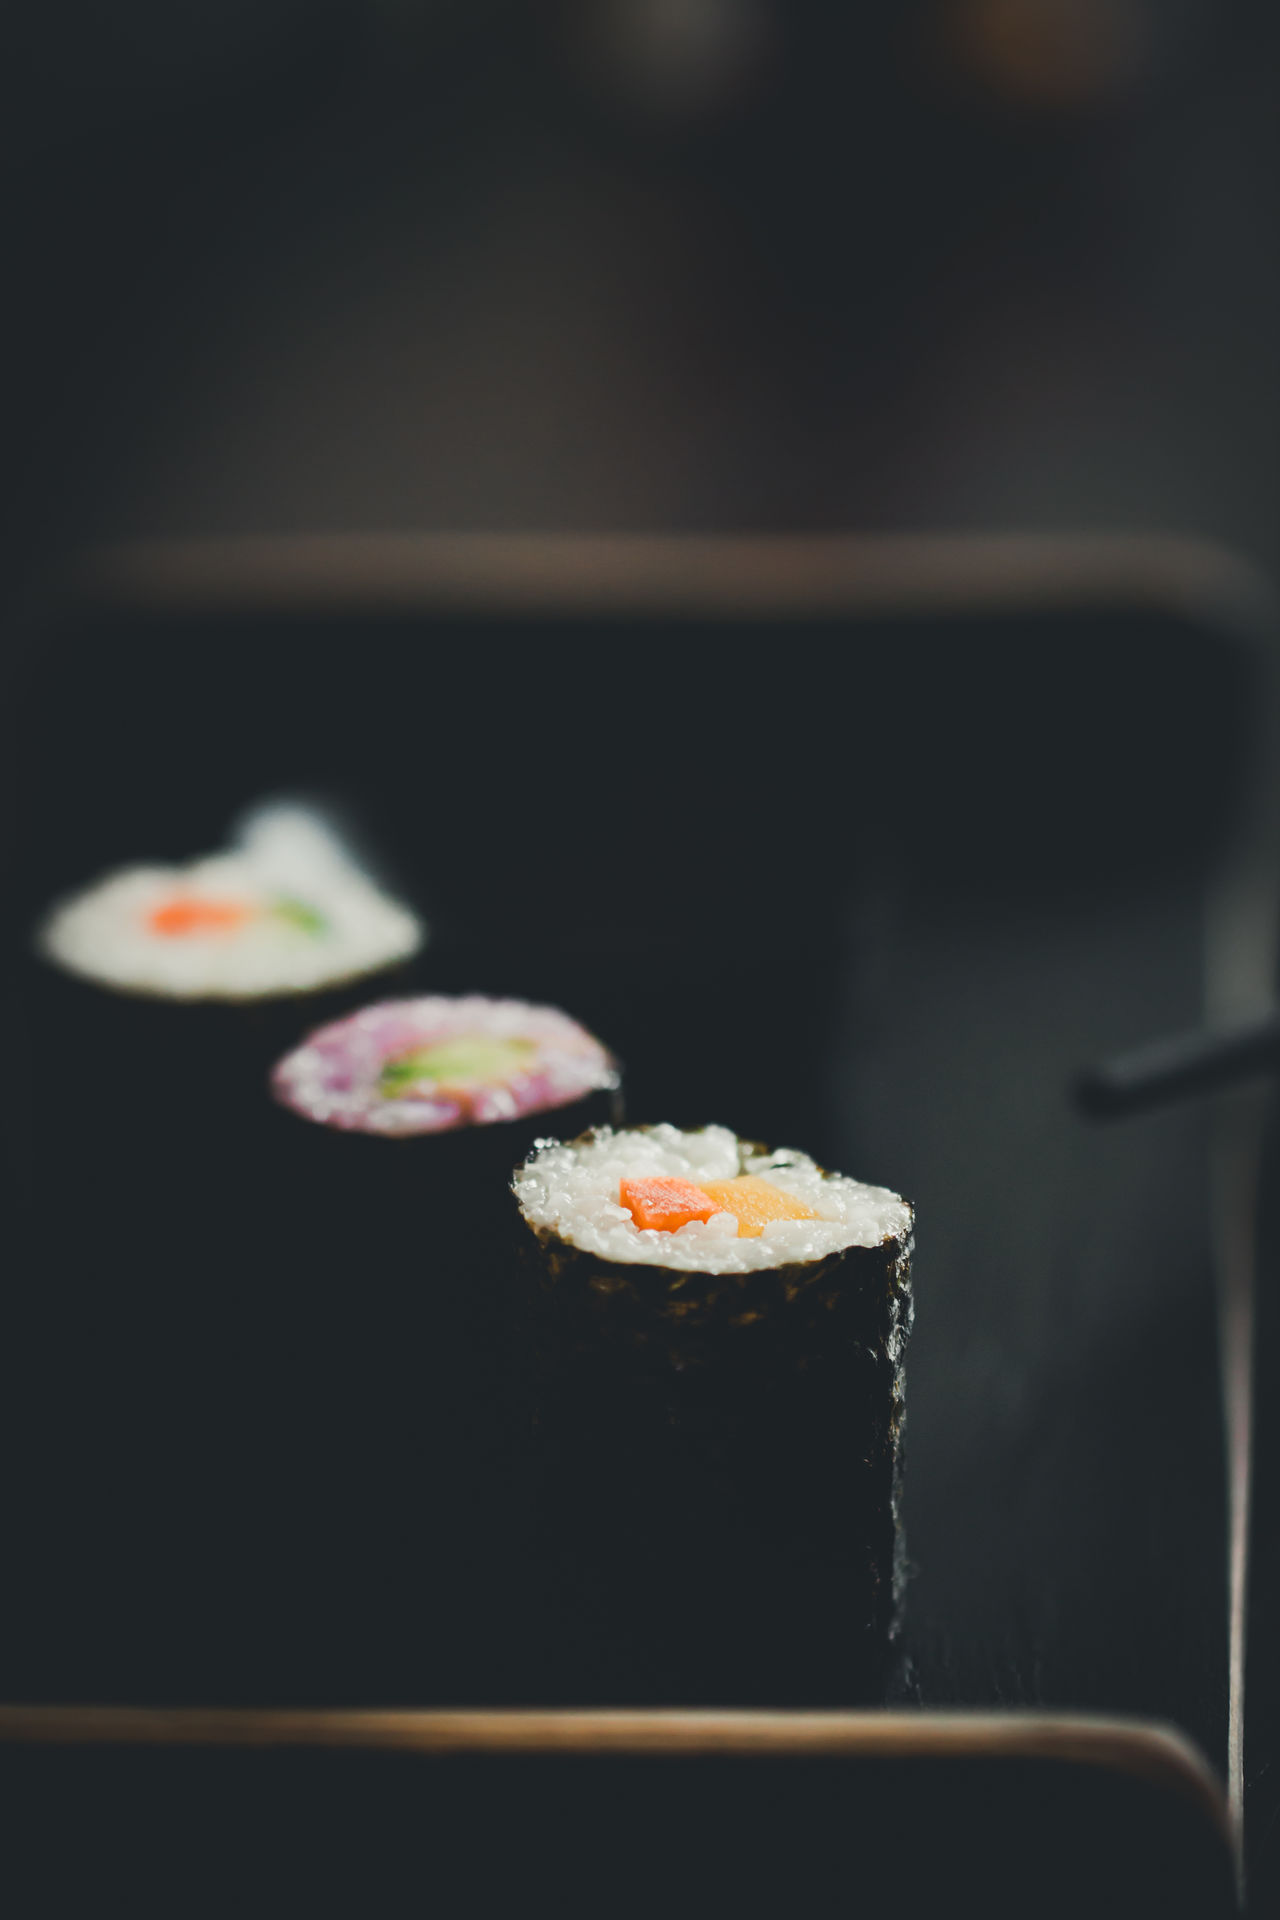 vegan sushi Black Background Carrots Chopsticks Close-up Food Food And Drink Freshness Healthy Healthy Eating Indoors  Japanese Food No People Ready-to-eat River Sushi Traditional Vegan Vegetable